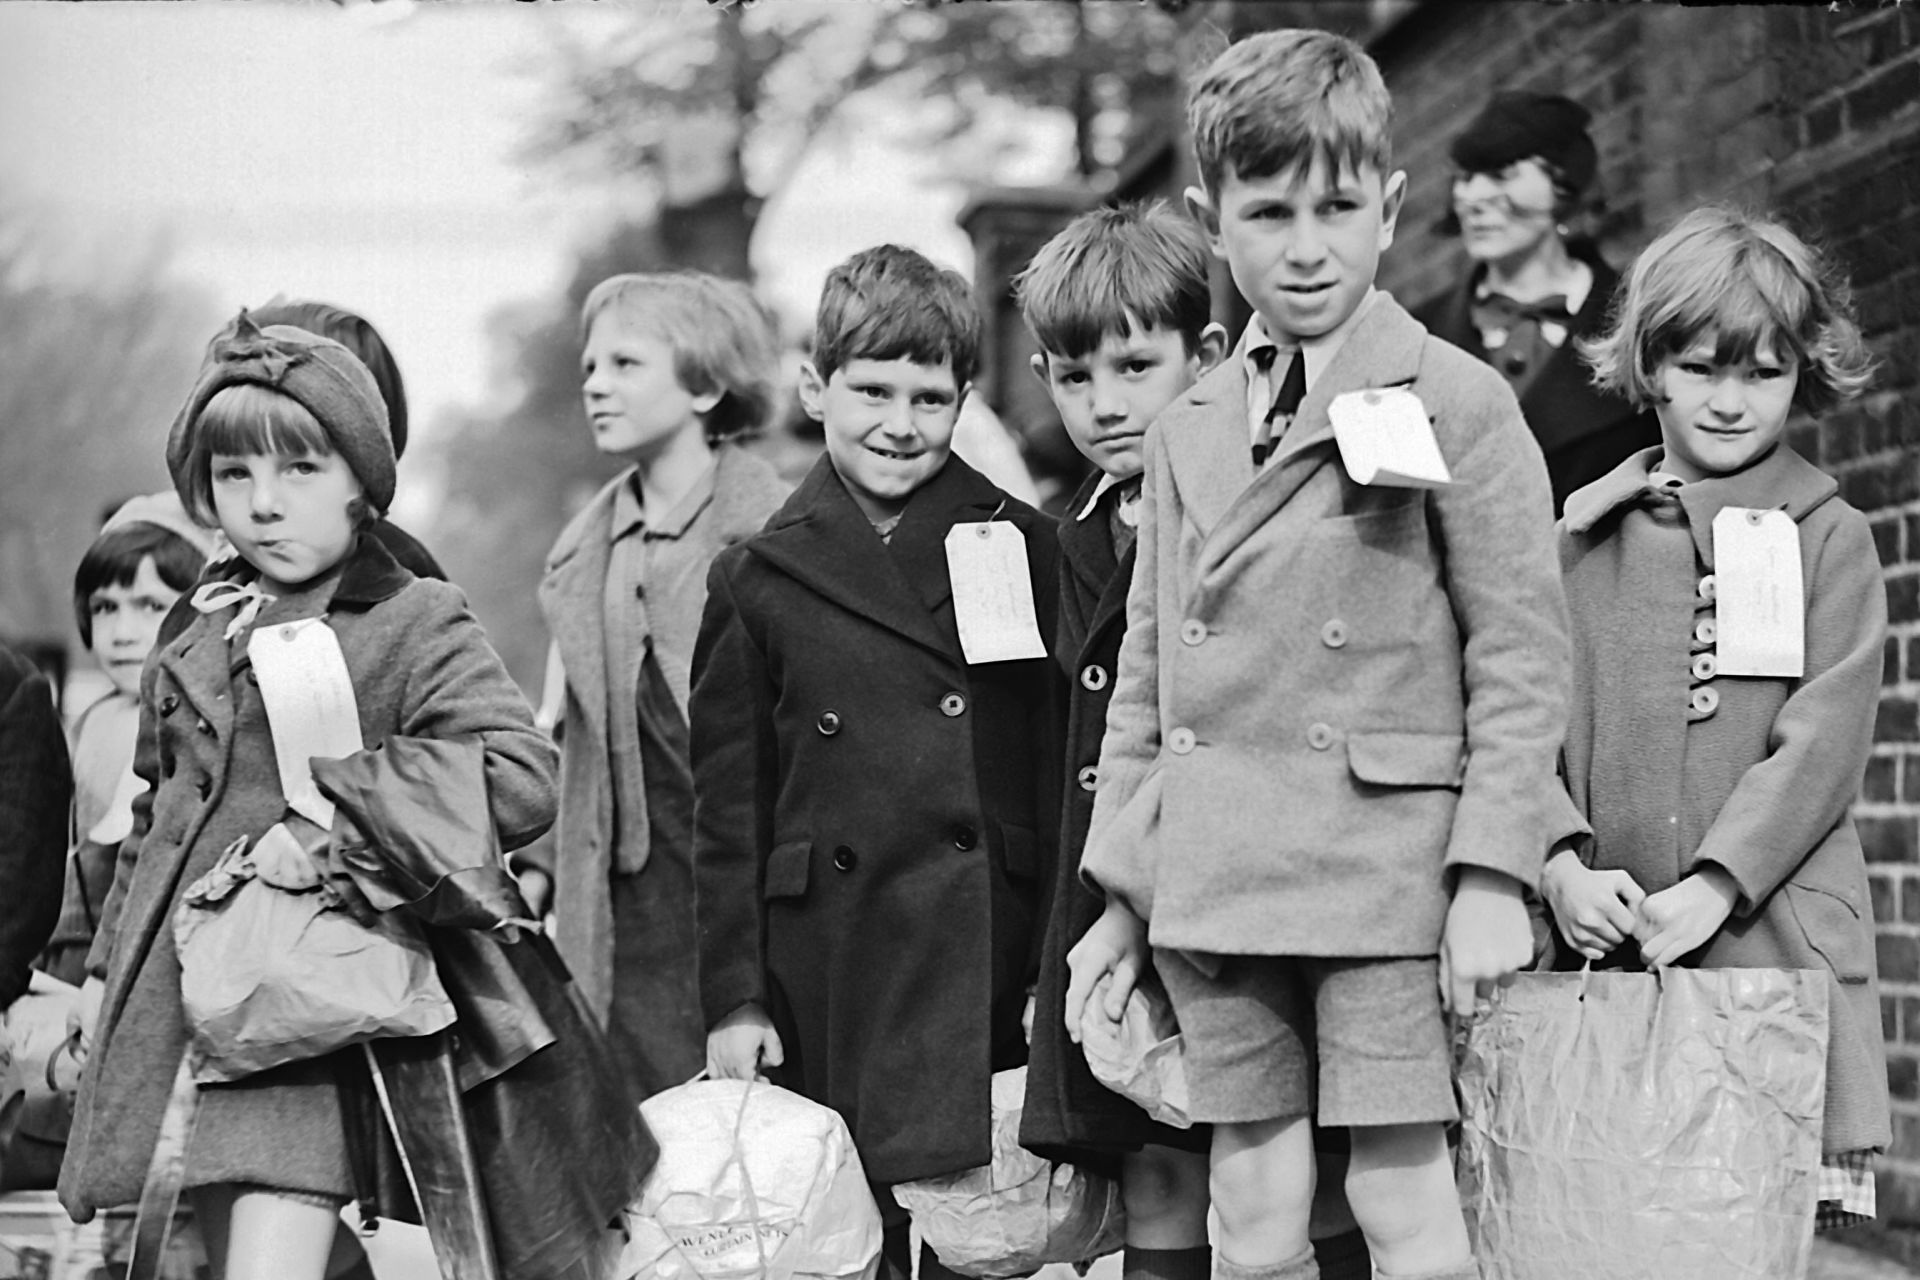 the evacuation of children in world In preparation for the war, evacuation plans were put into consideration to avoid possible danger on children primary children, toddlers under five and moms were.